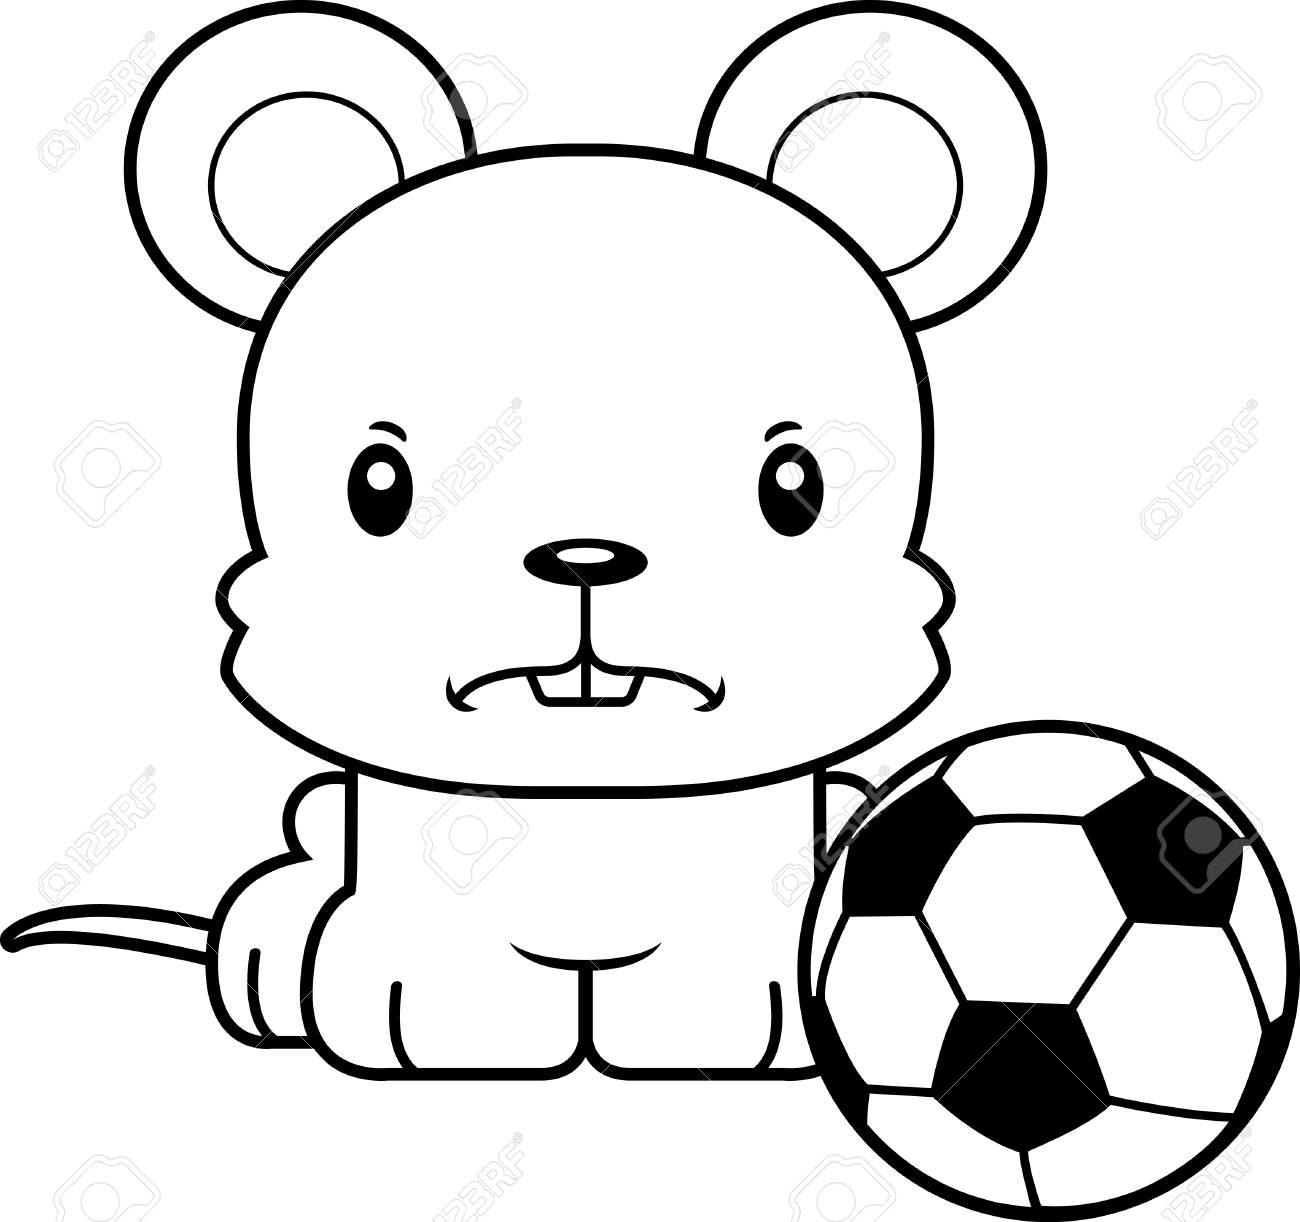 a cartoon soccer player mouse looking angry royalty free cliparts